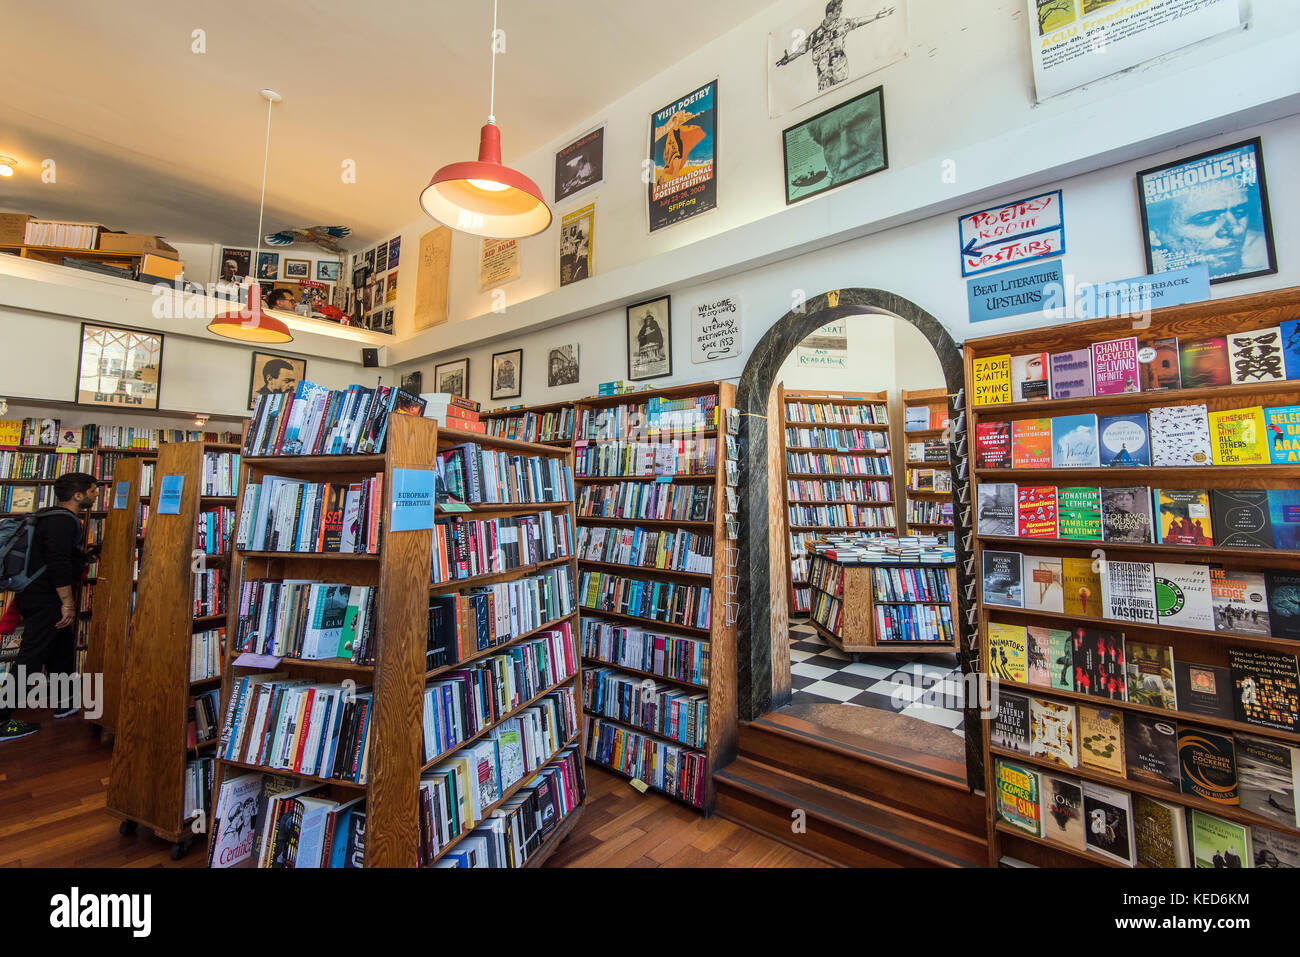 Interior view of the historical City Lights Bookstore, San Francisco, California, USA - Stock Image